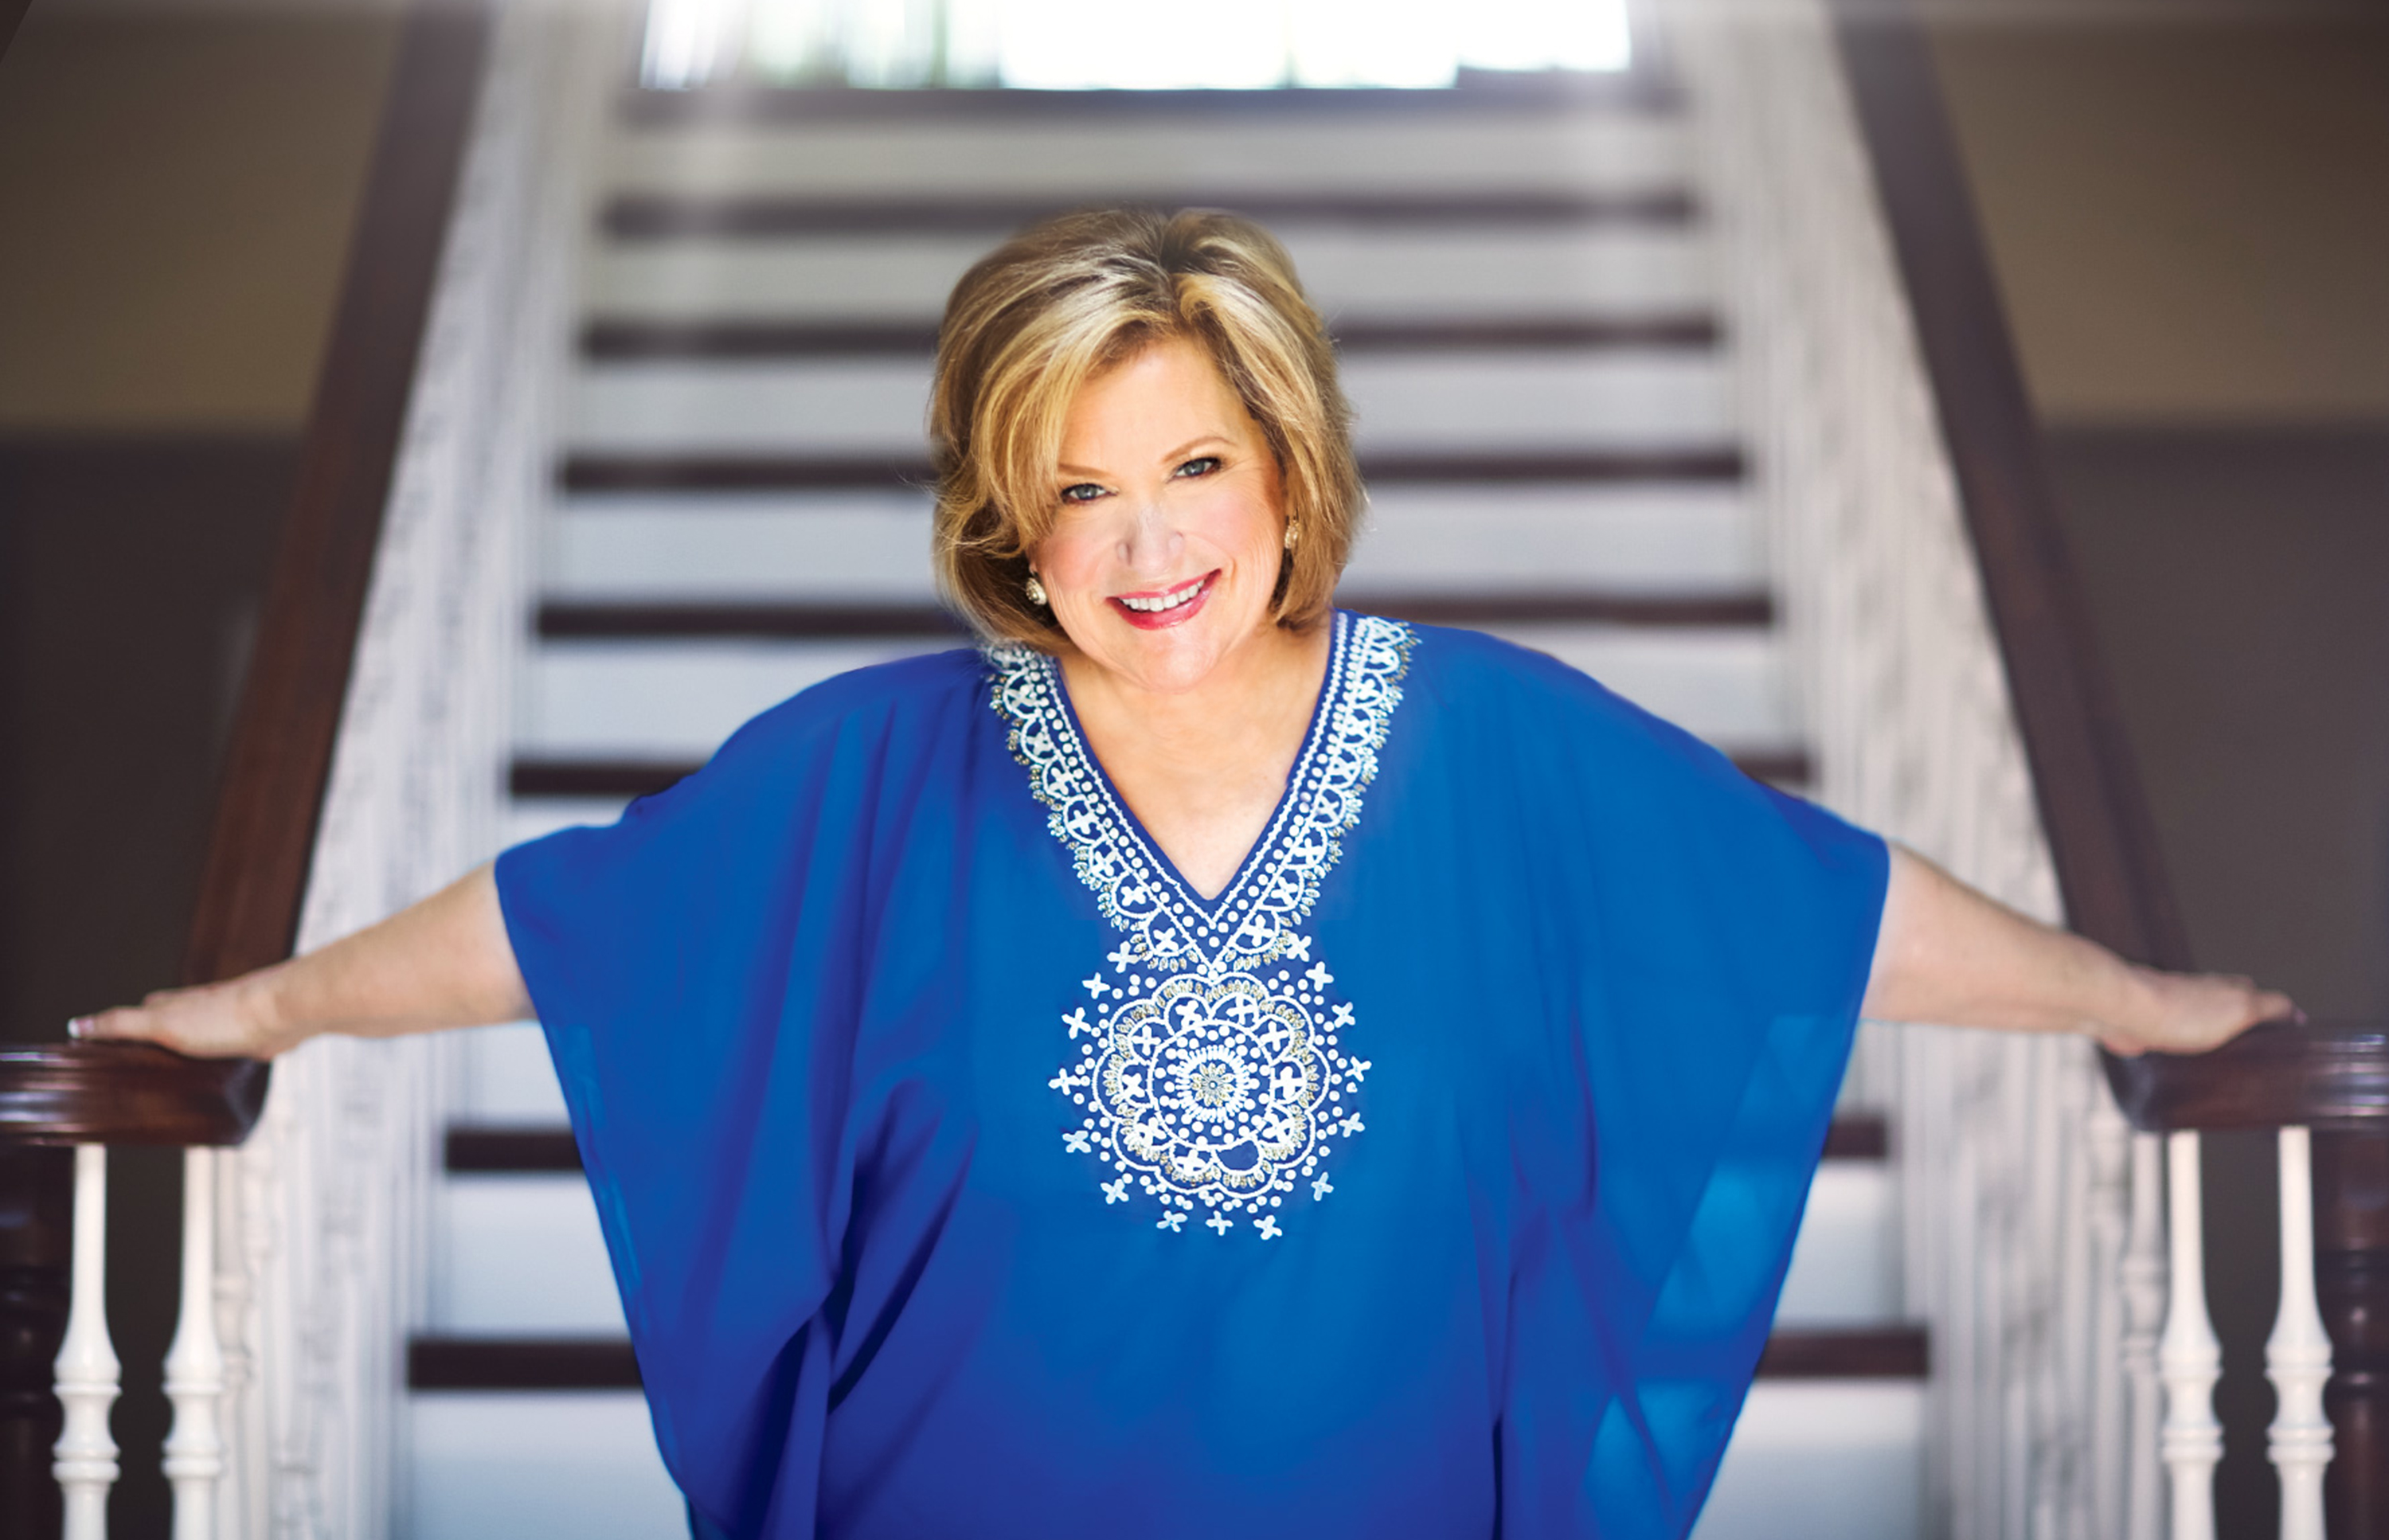 Christian music legend, Sandi Patty